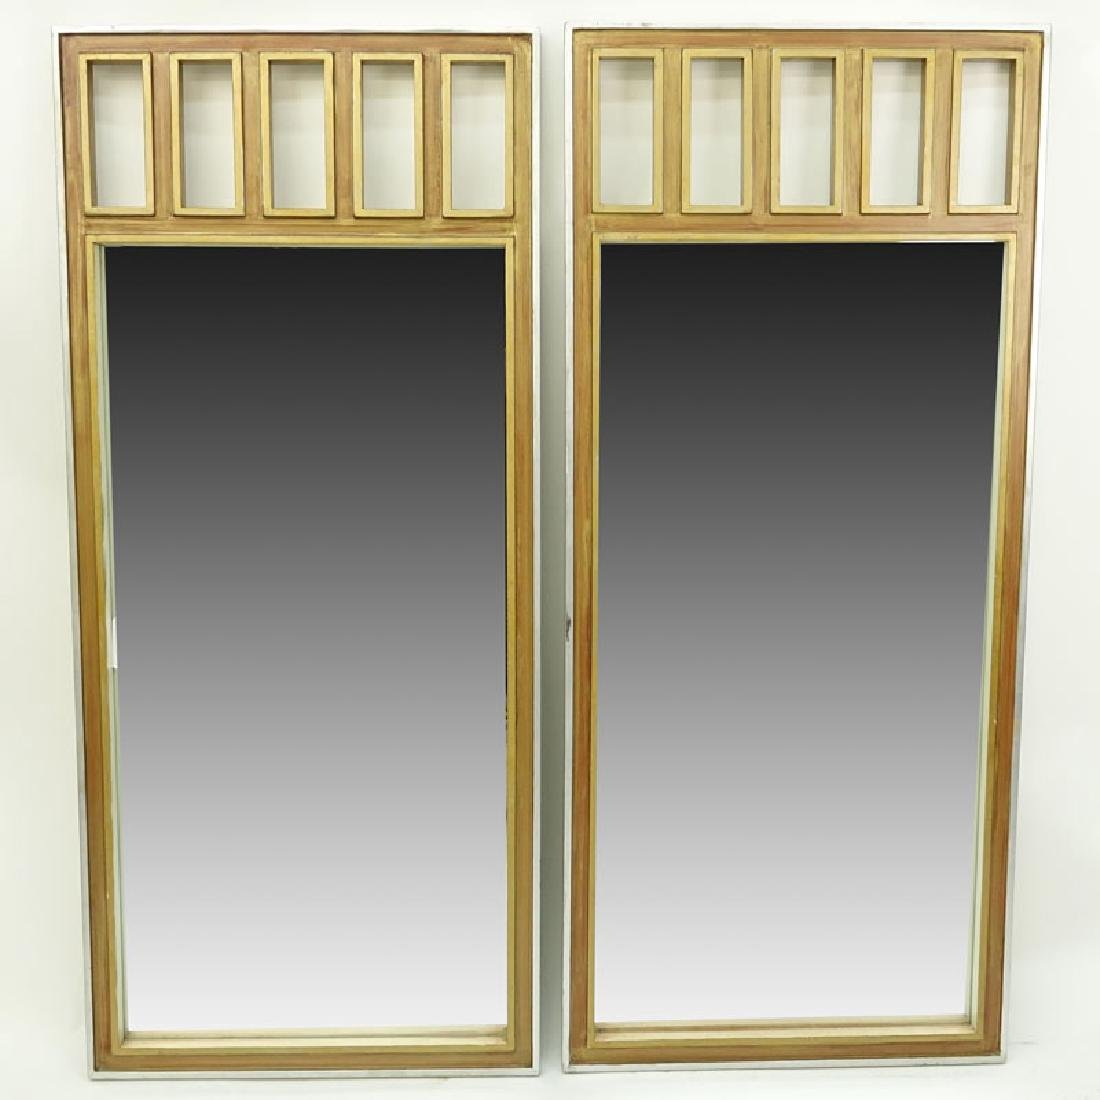 Pair of Mid to Late 20th C. Mirrors with Painted